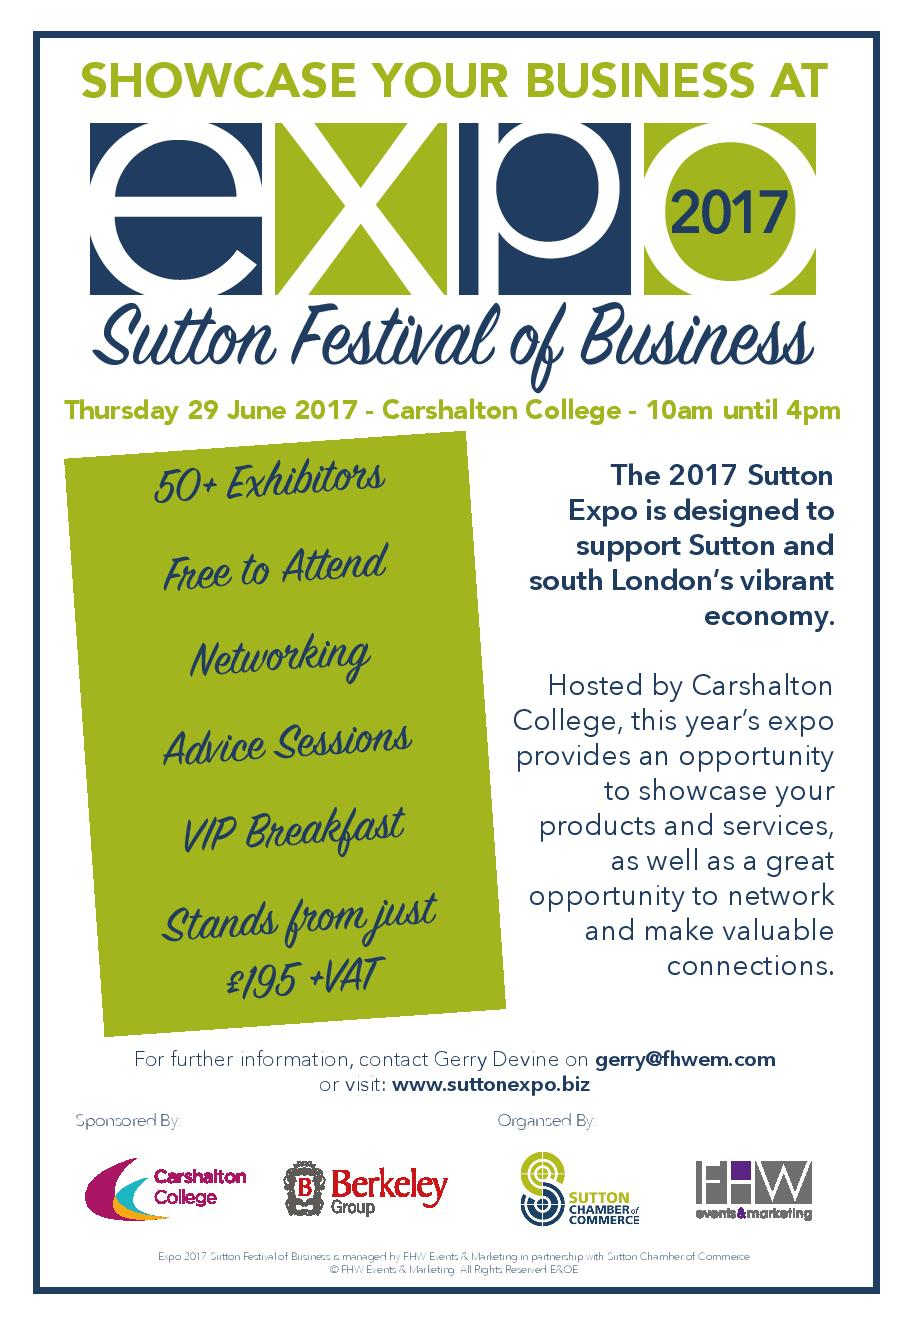 Sutton Business Expo